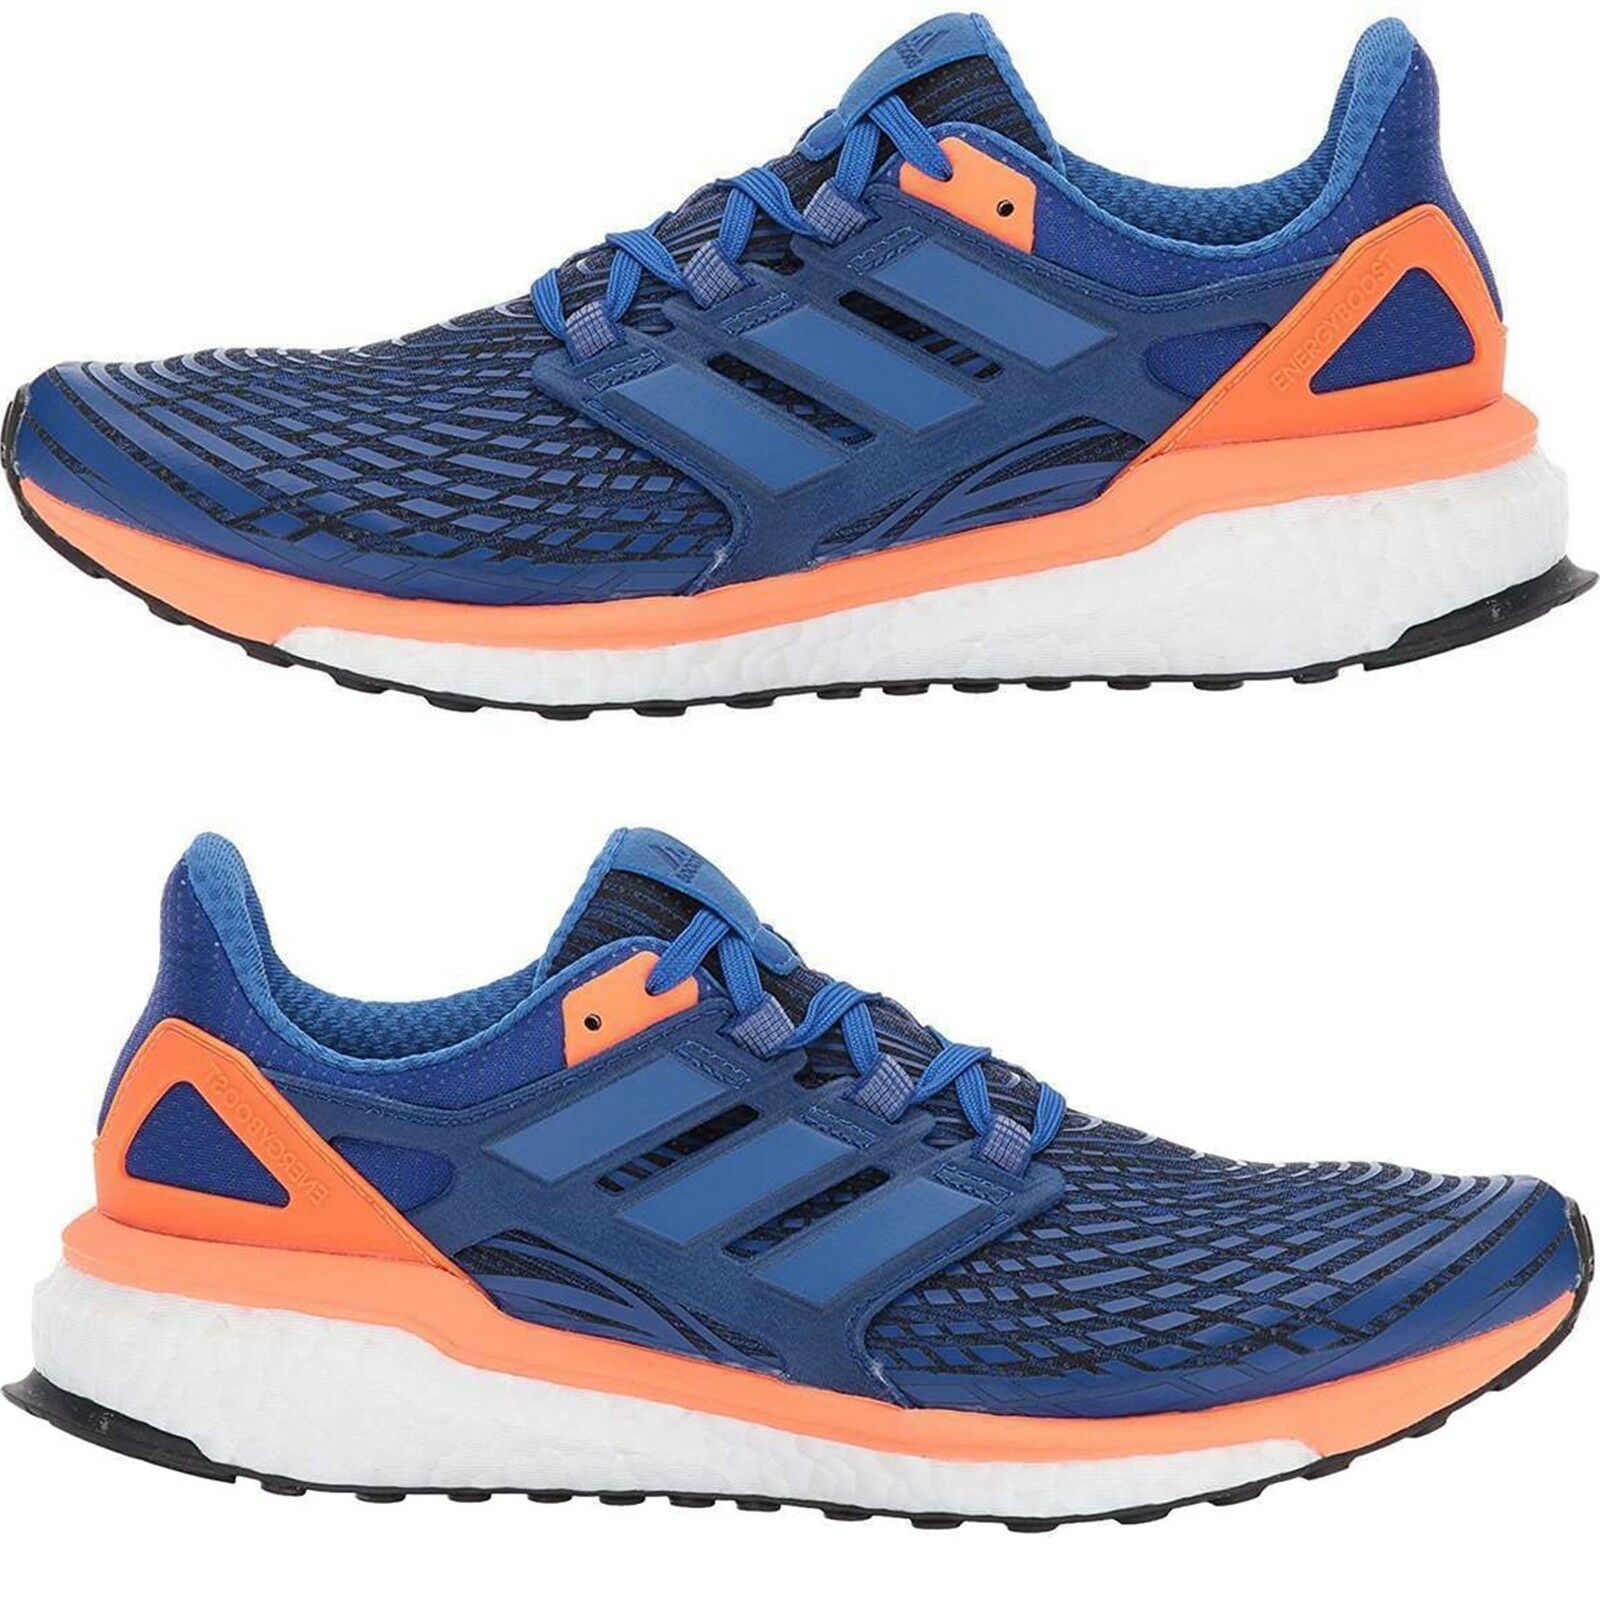 Adidas Men's Energy Boost STRETCHWEB FITCOUNTER Running Training shoes Sneakers